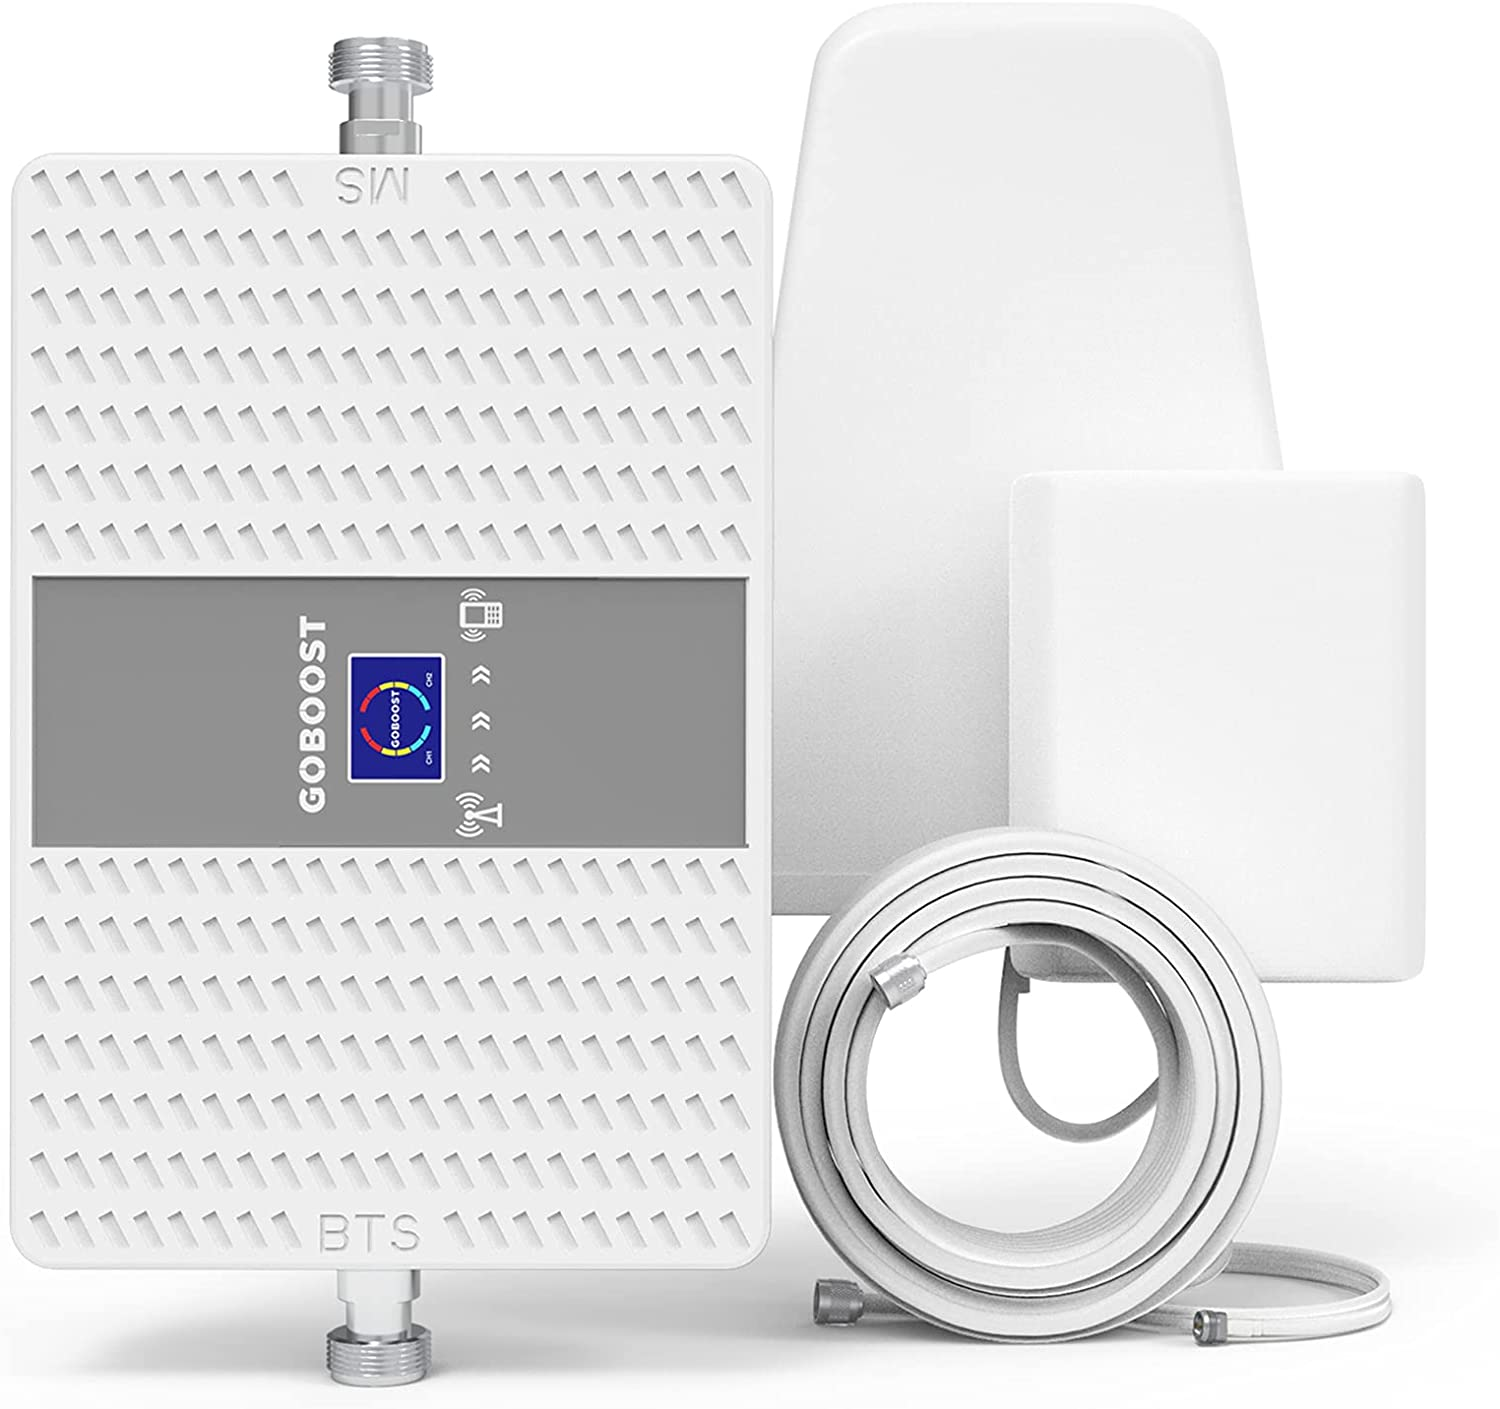 Goboost Cell Phone Signal Booster for Home and Office 3G 4G LTE Band 4 Band 5 850MHz 1700/2100MHz Cell Signal Amplifier Repeater with Antenna Kit for AT&T Verizon T-Mobile US Cellular | FCC Approved